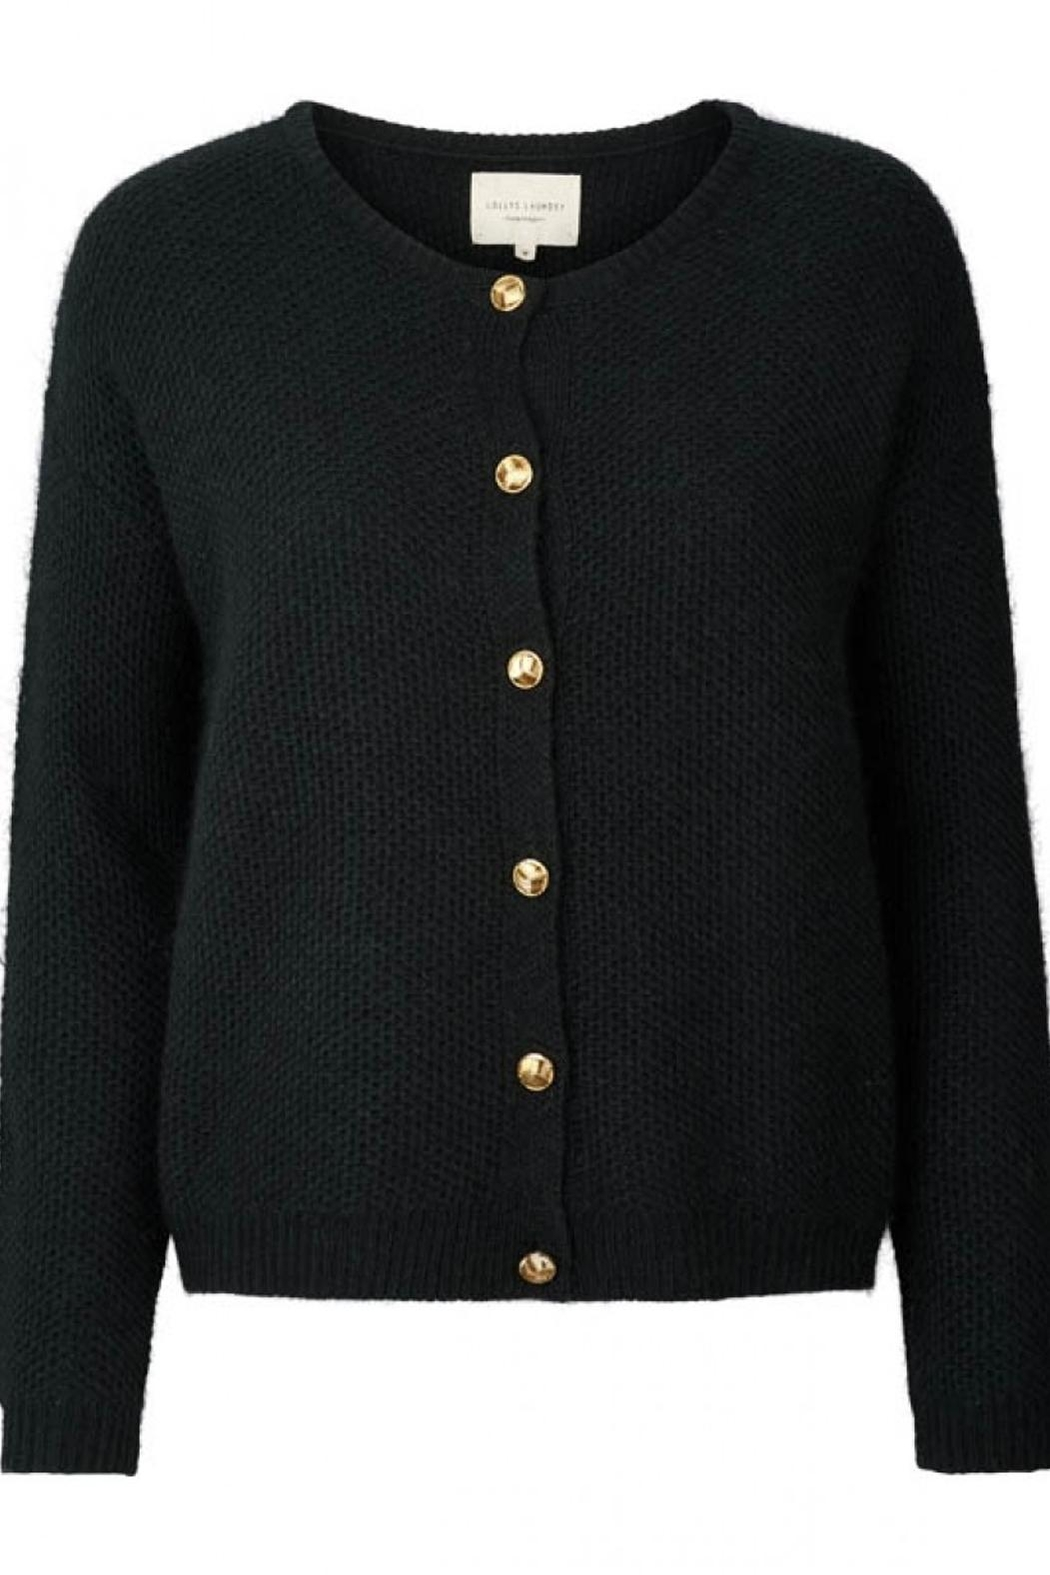 LOLLYS LAUNDRY Soft Knitted Cardigan - Front Full Image